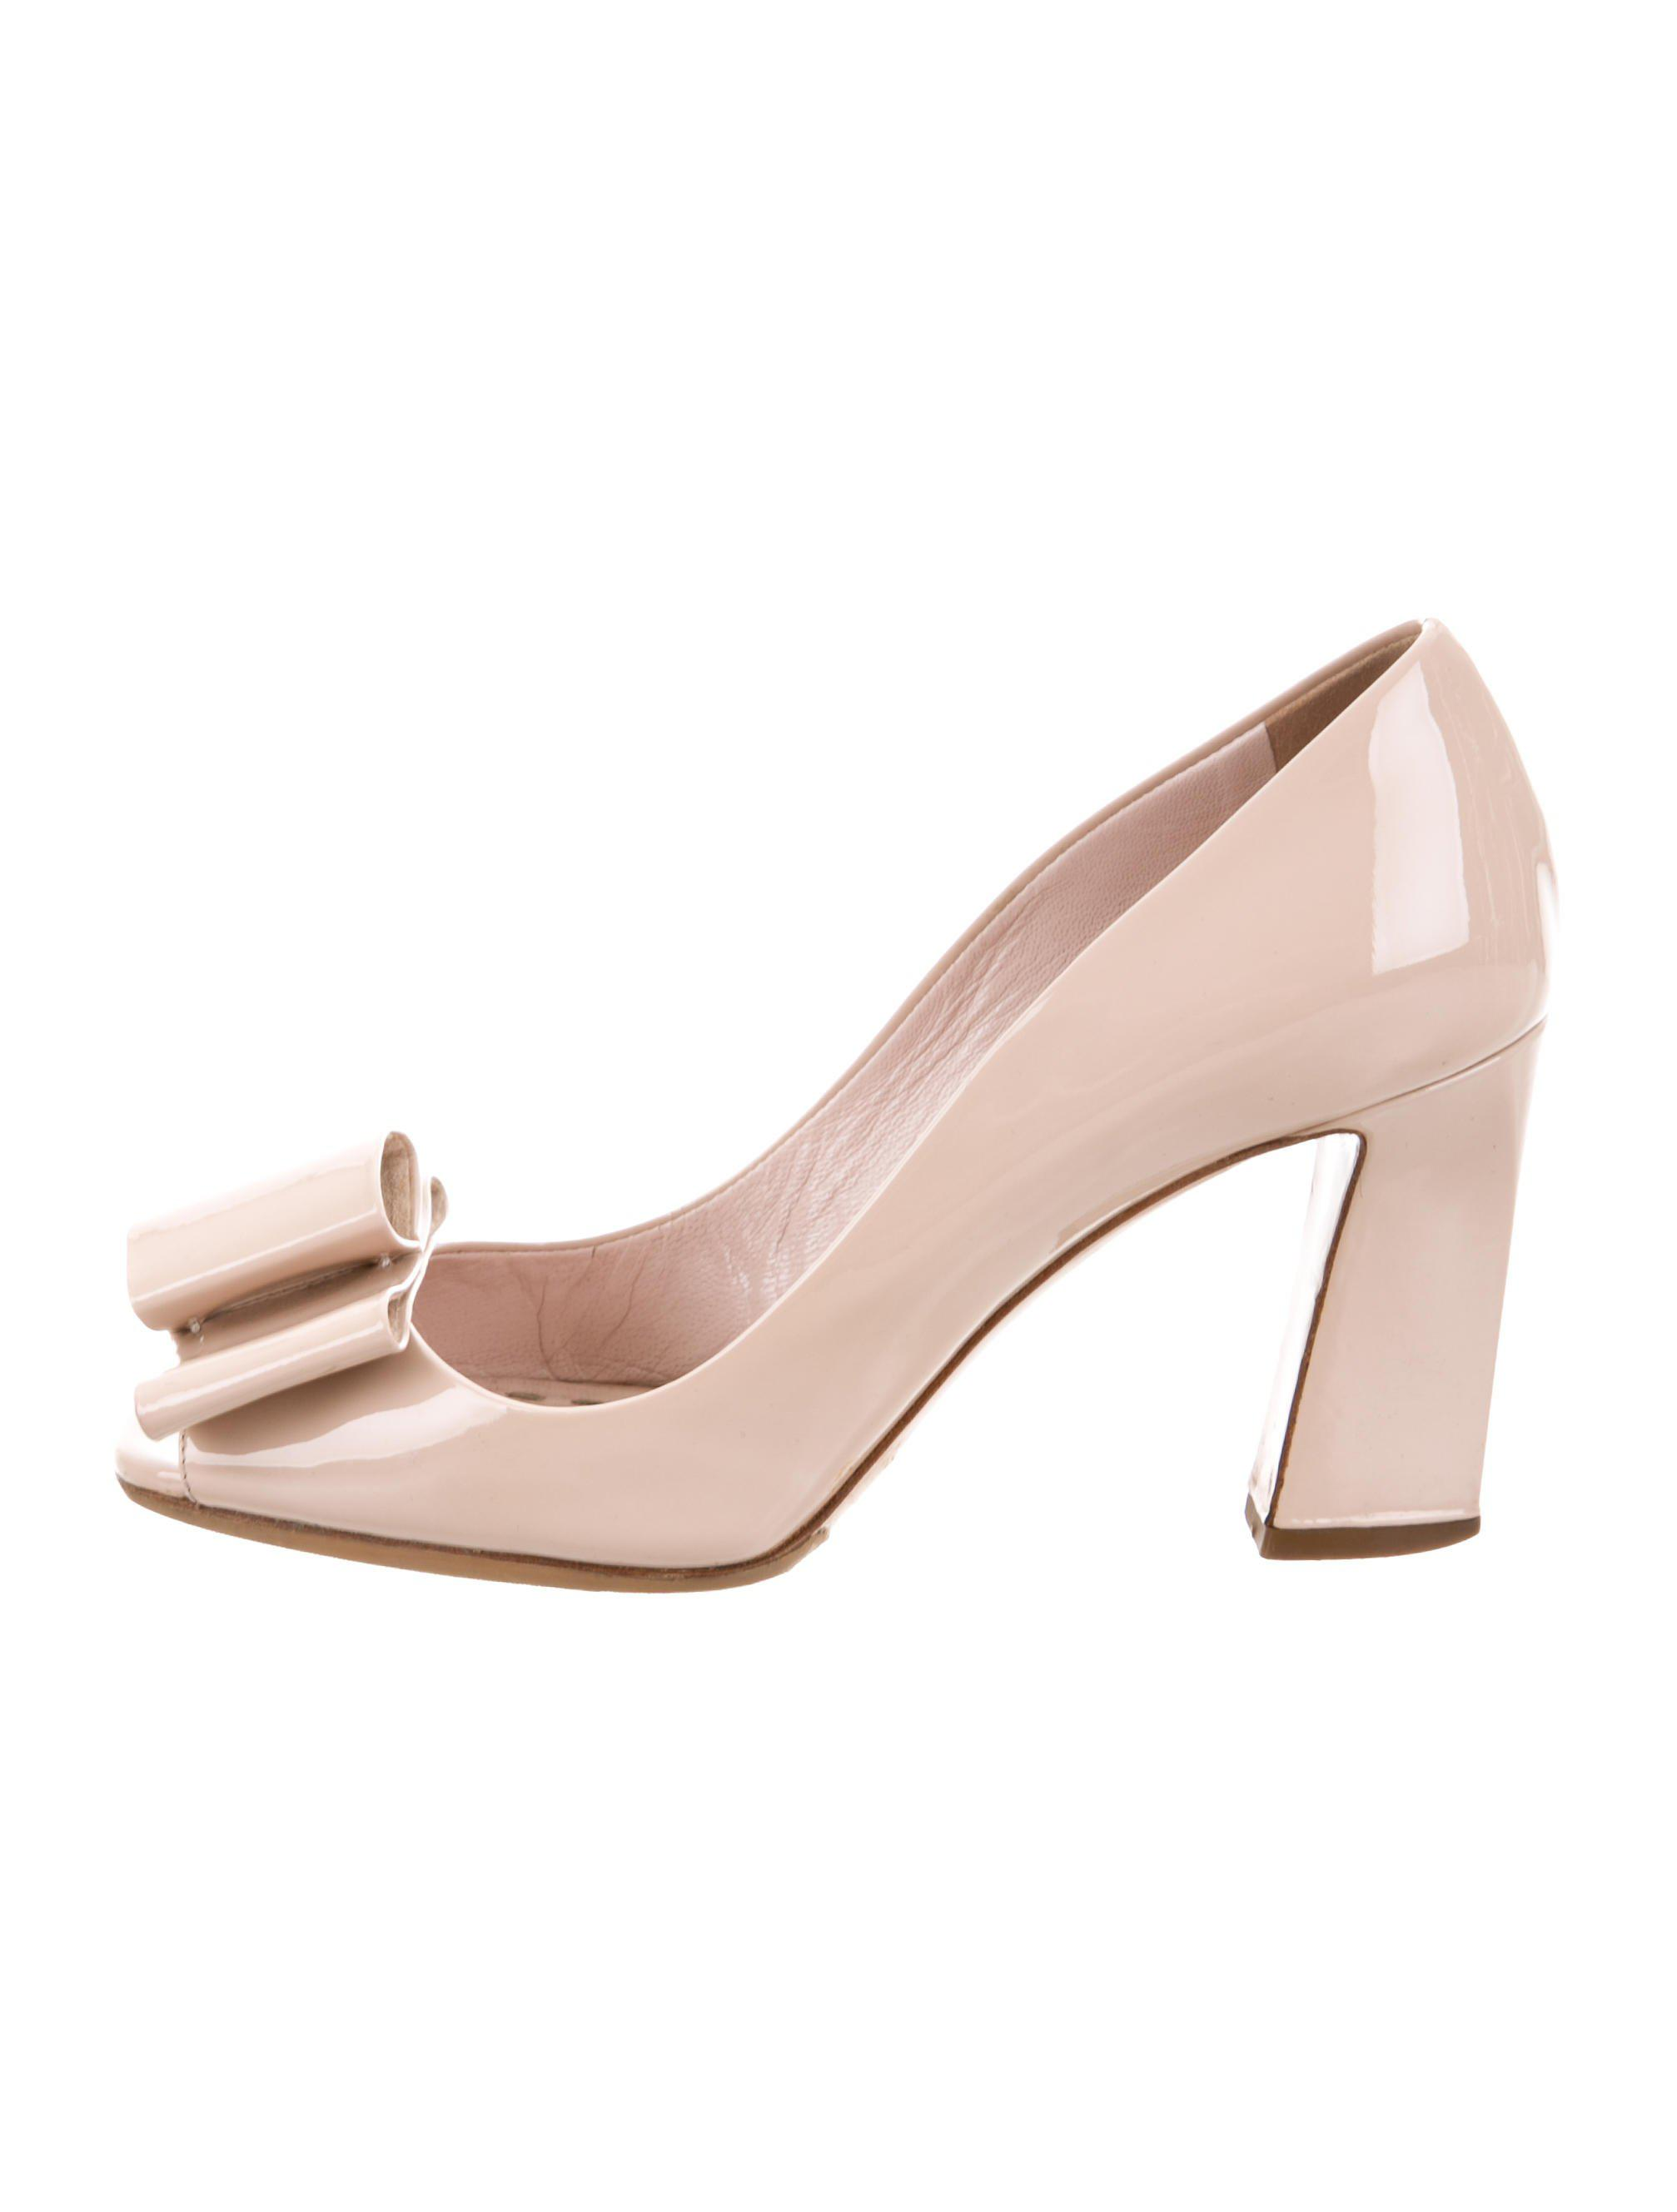 cheap sale looking for Miu Miu Bow-Accented Peep-Toe Pumps wide range of cheap price sale free shipping shop online cheap reliable nnGmNEAy6m